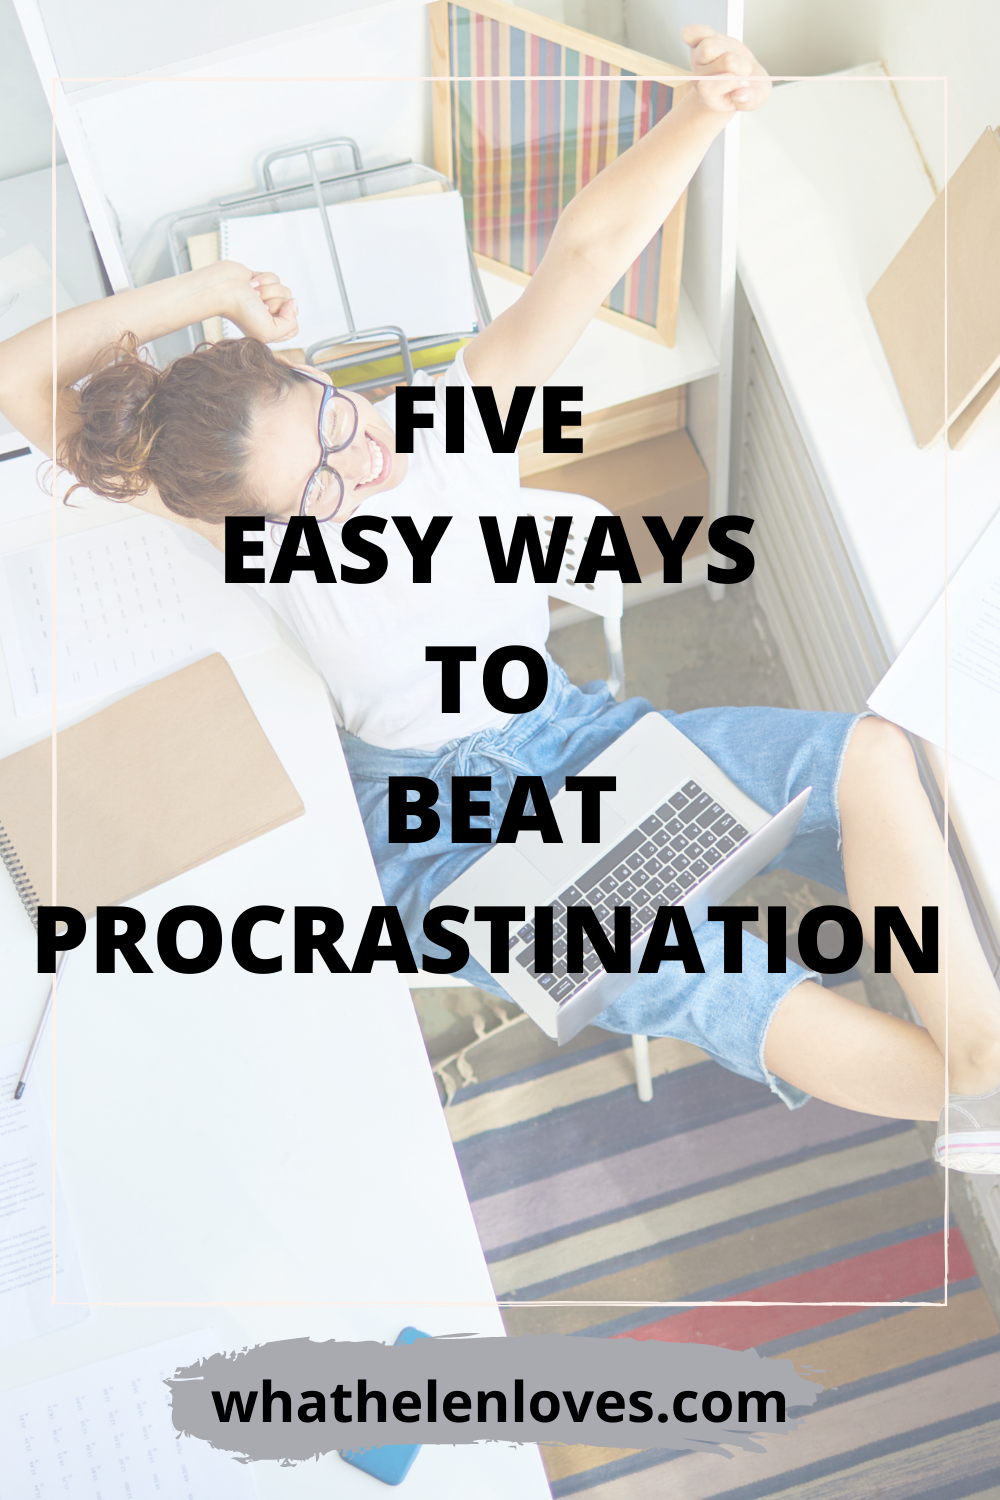 Pinterest pin for a blog post about five easy ways to beat procrastination.